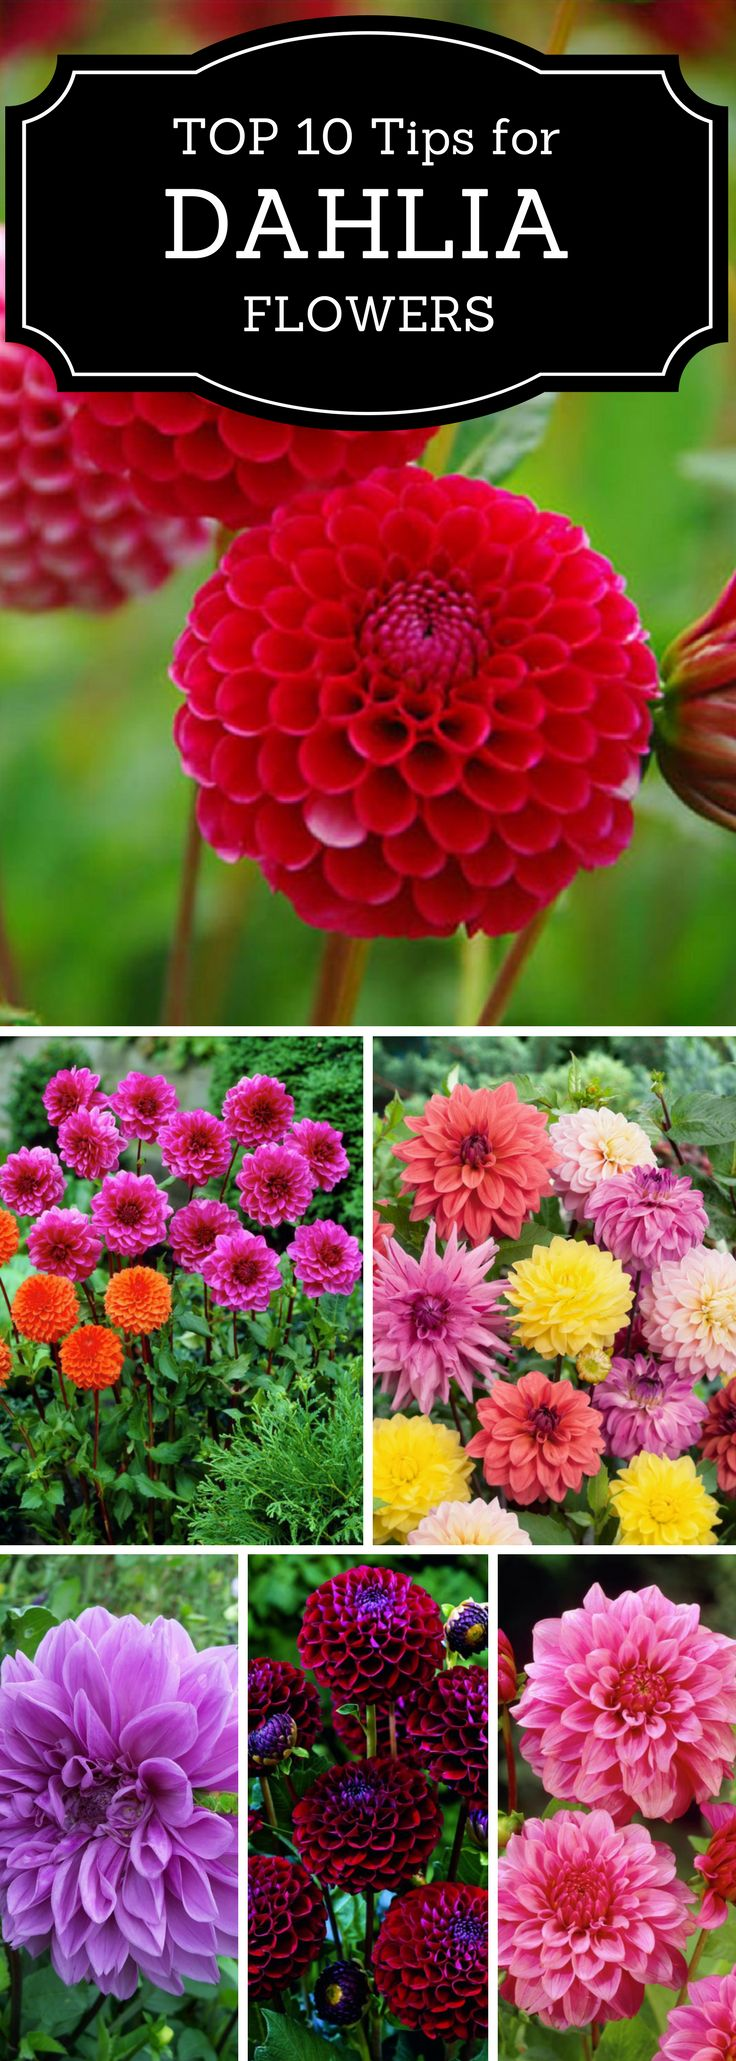 Top 10 Tips on How to Plant, Grow, and Care for Dahlia Flowers | Read these tips for gardening Dahlia flowers.